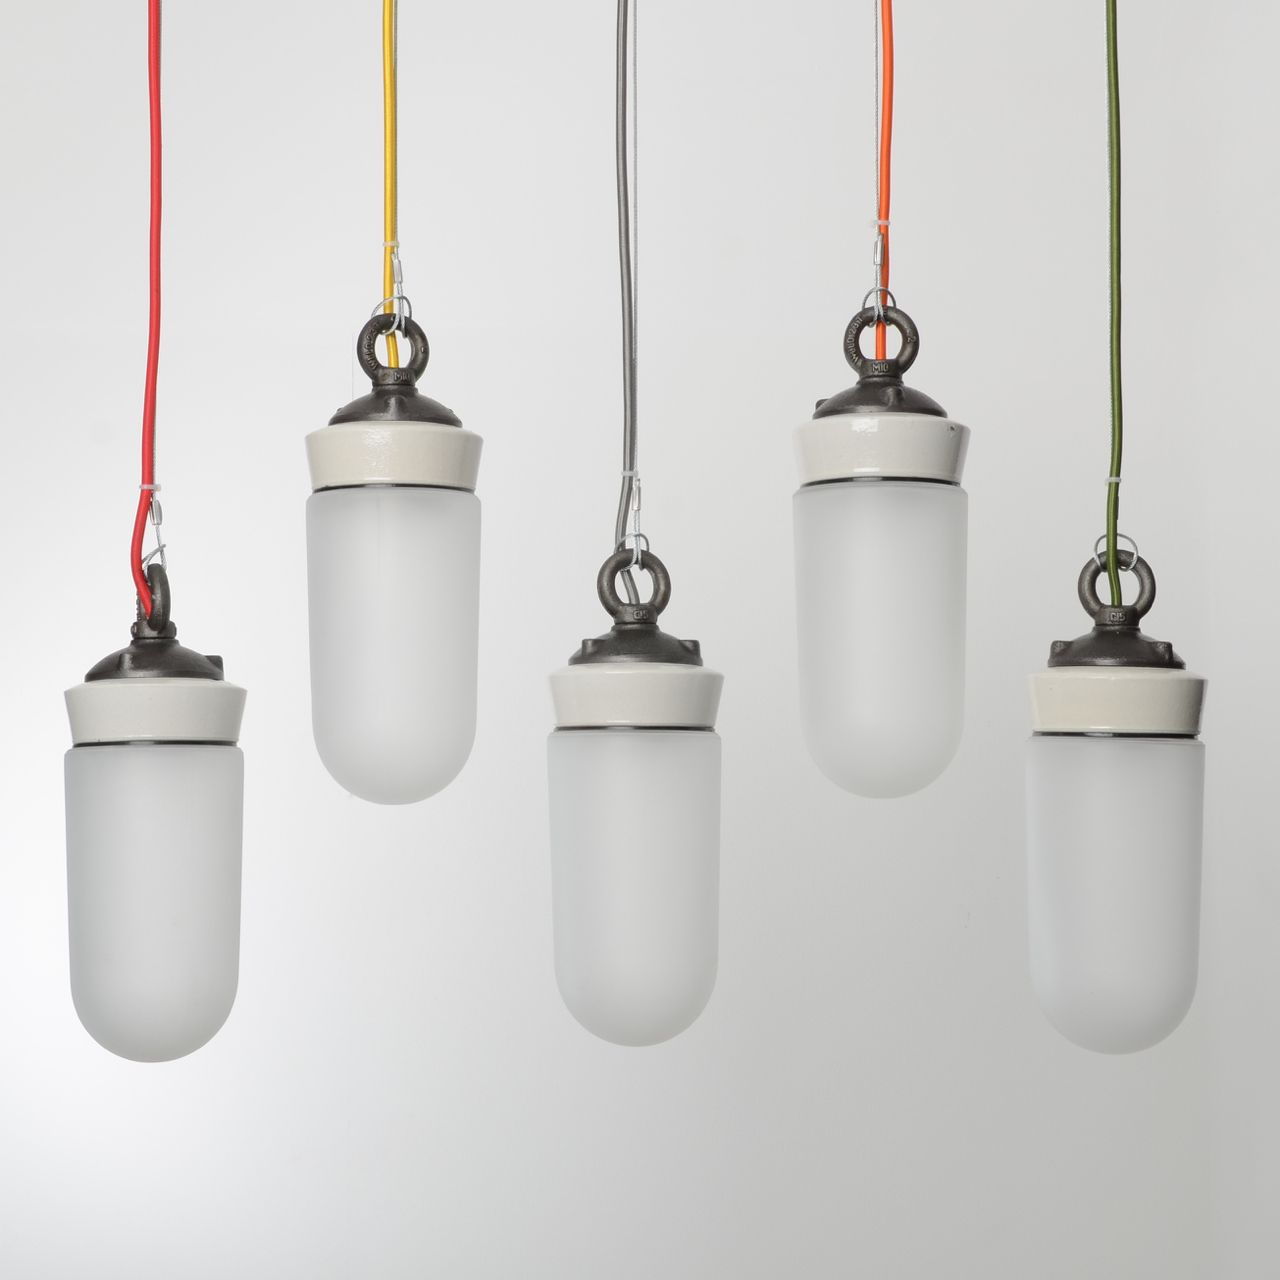 used pendant lighting. Frosted Glass Test Tube Pendant - Stylish And Never Used Porcelain Lights Lighting